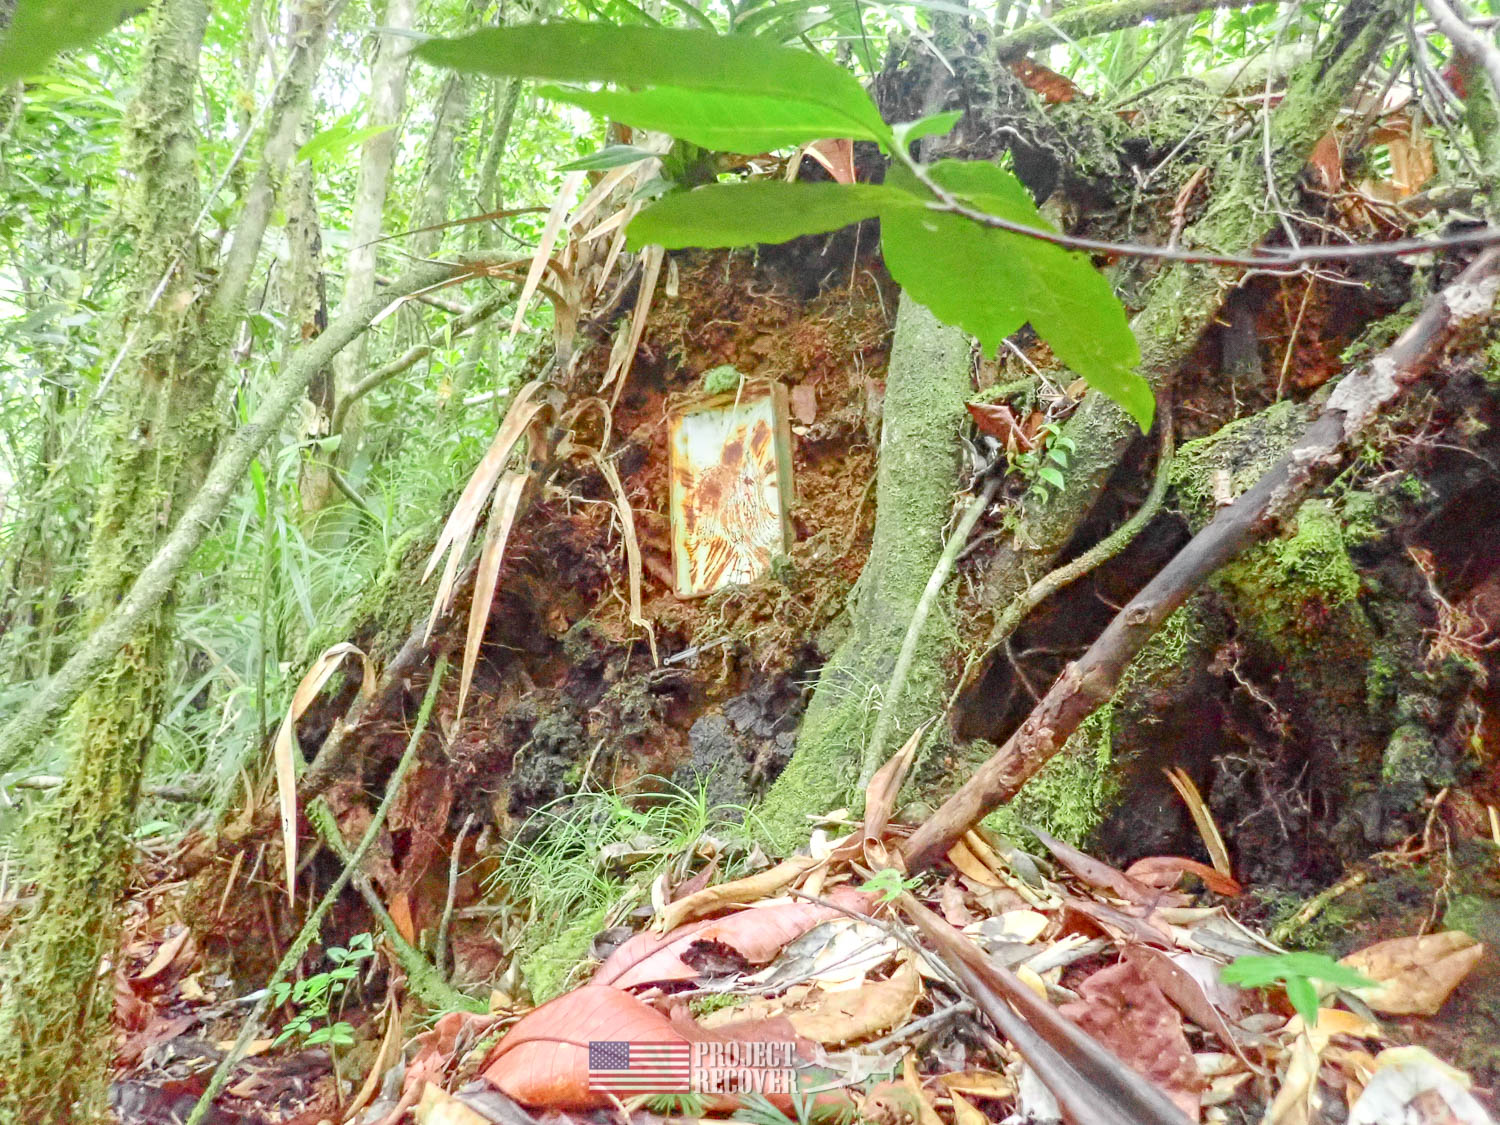 Frying plane embedded in tree in jungle. Execution of WWII POWs and Innocents in Palau - Project Recover is committed to bringing the MIA home. Photos by Harry Parker Photography.com